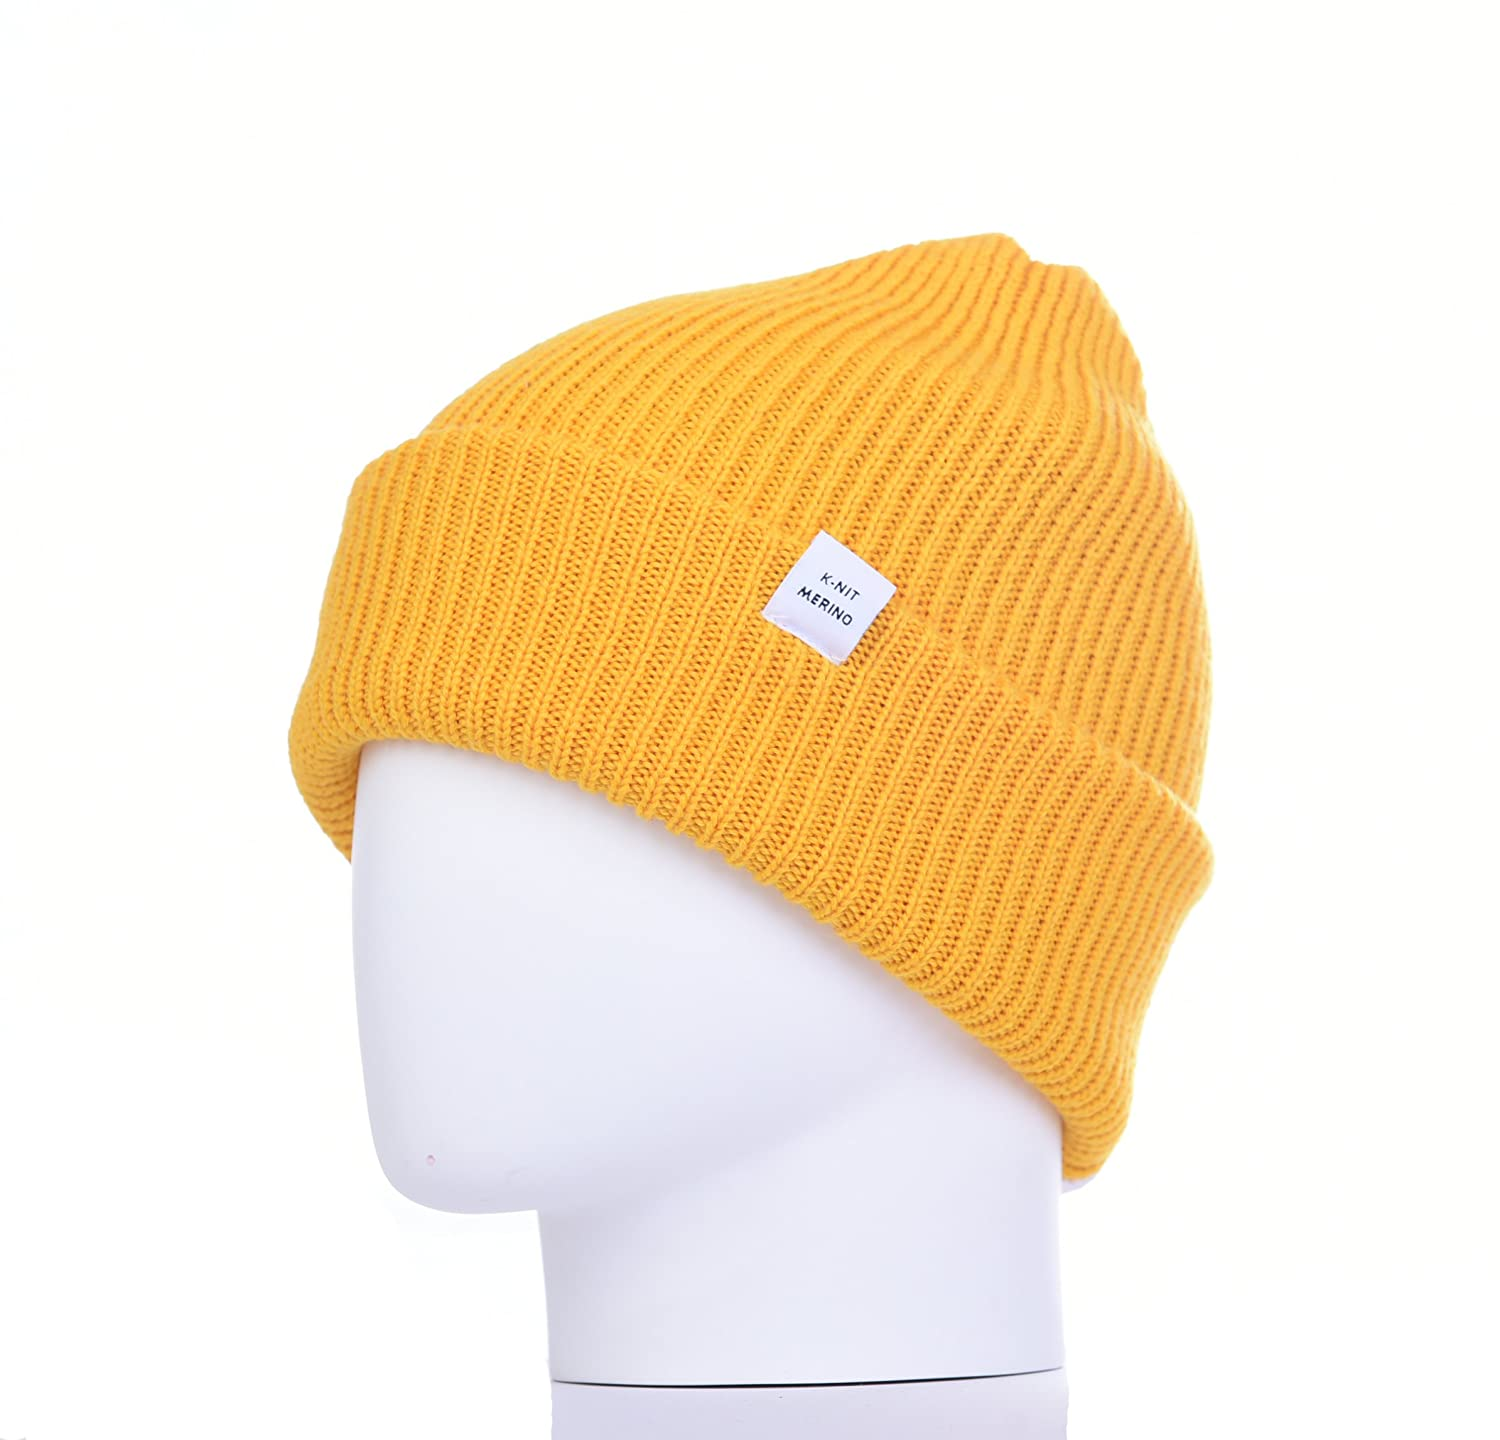 2de88272c K-nit 'Bowen' Turn Up Merino Wool Beanie Hat